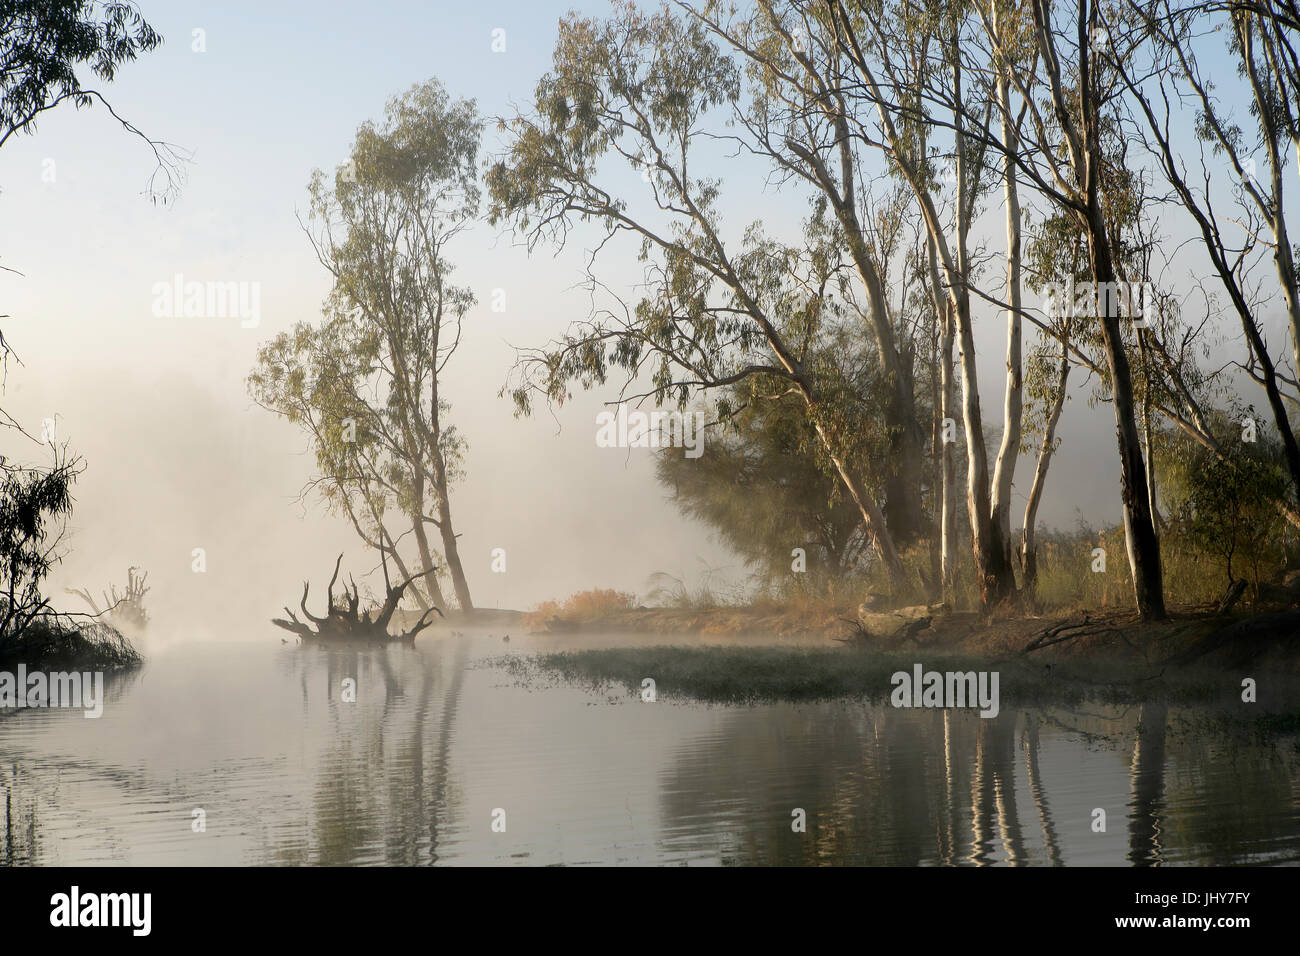 Early morning on the River Murray near Mildura - Stock Image